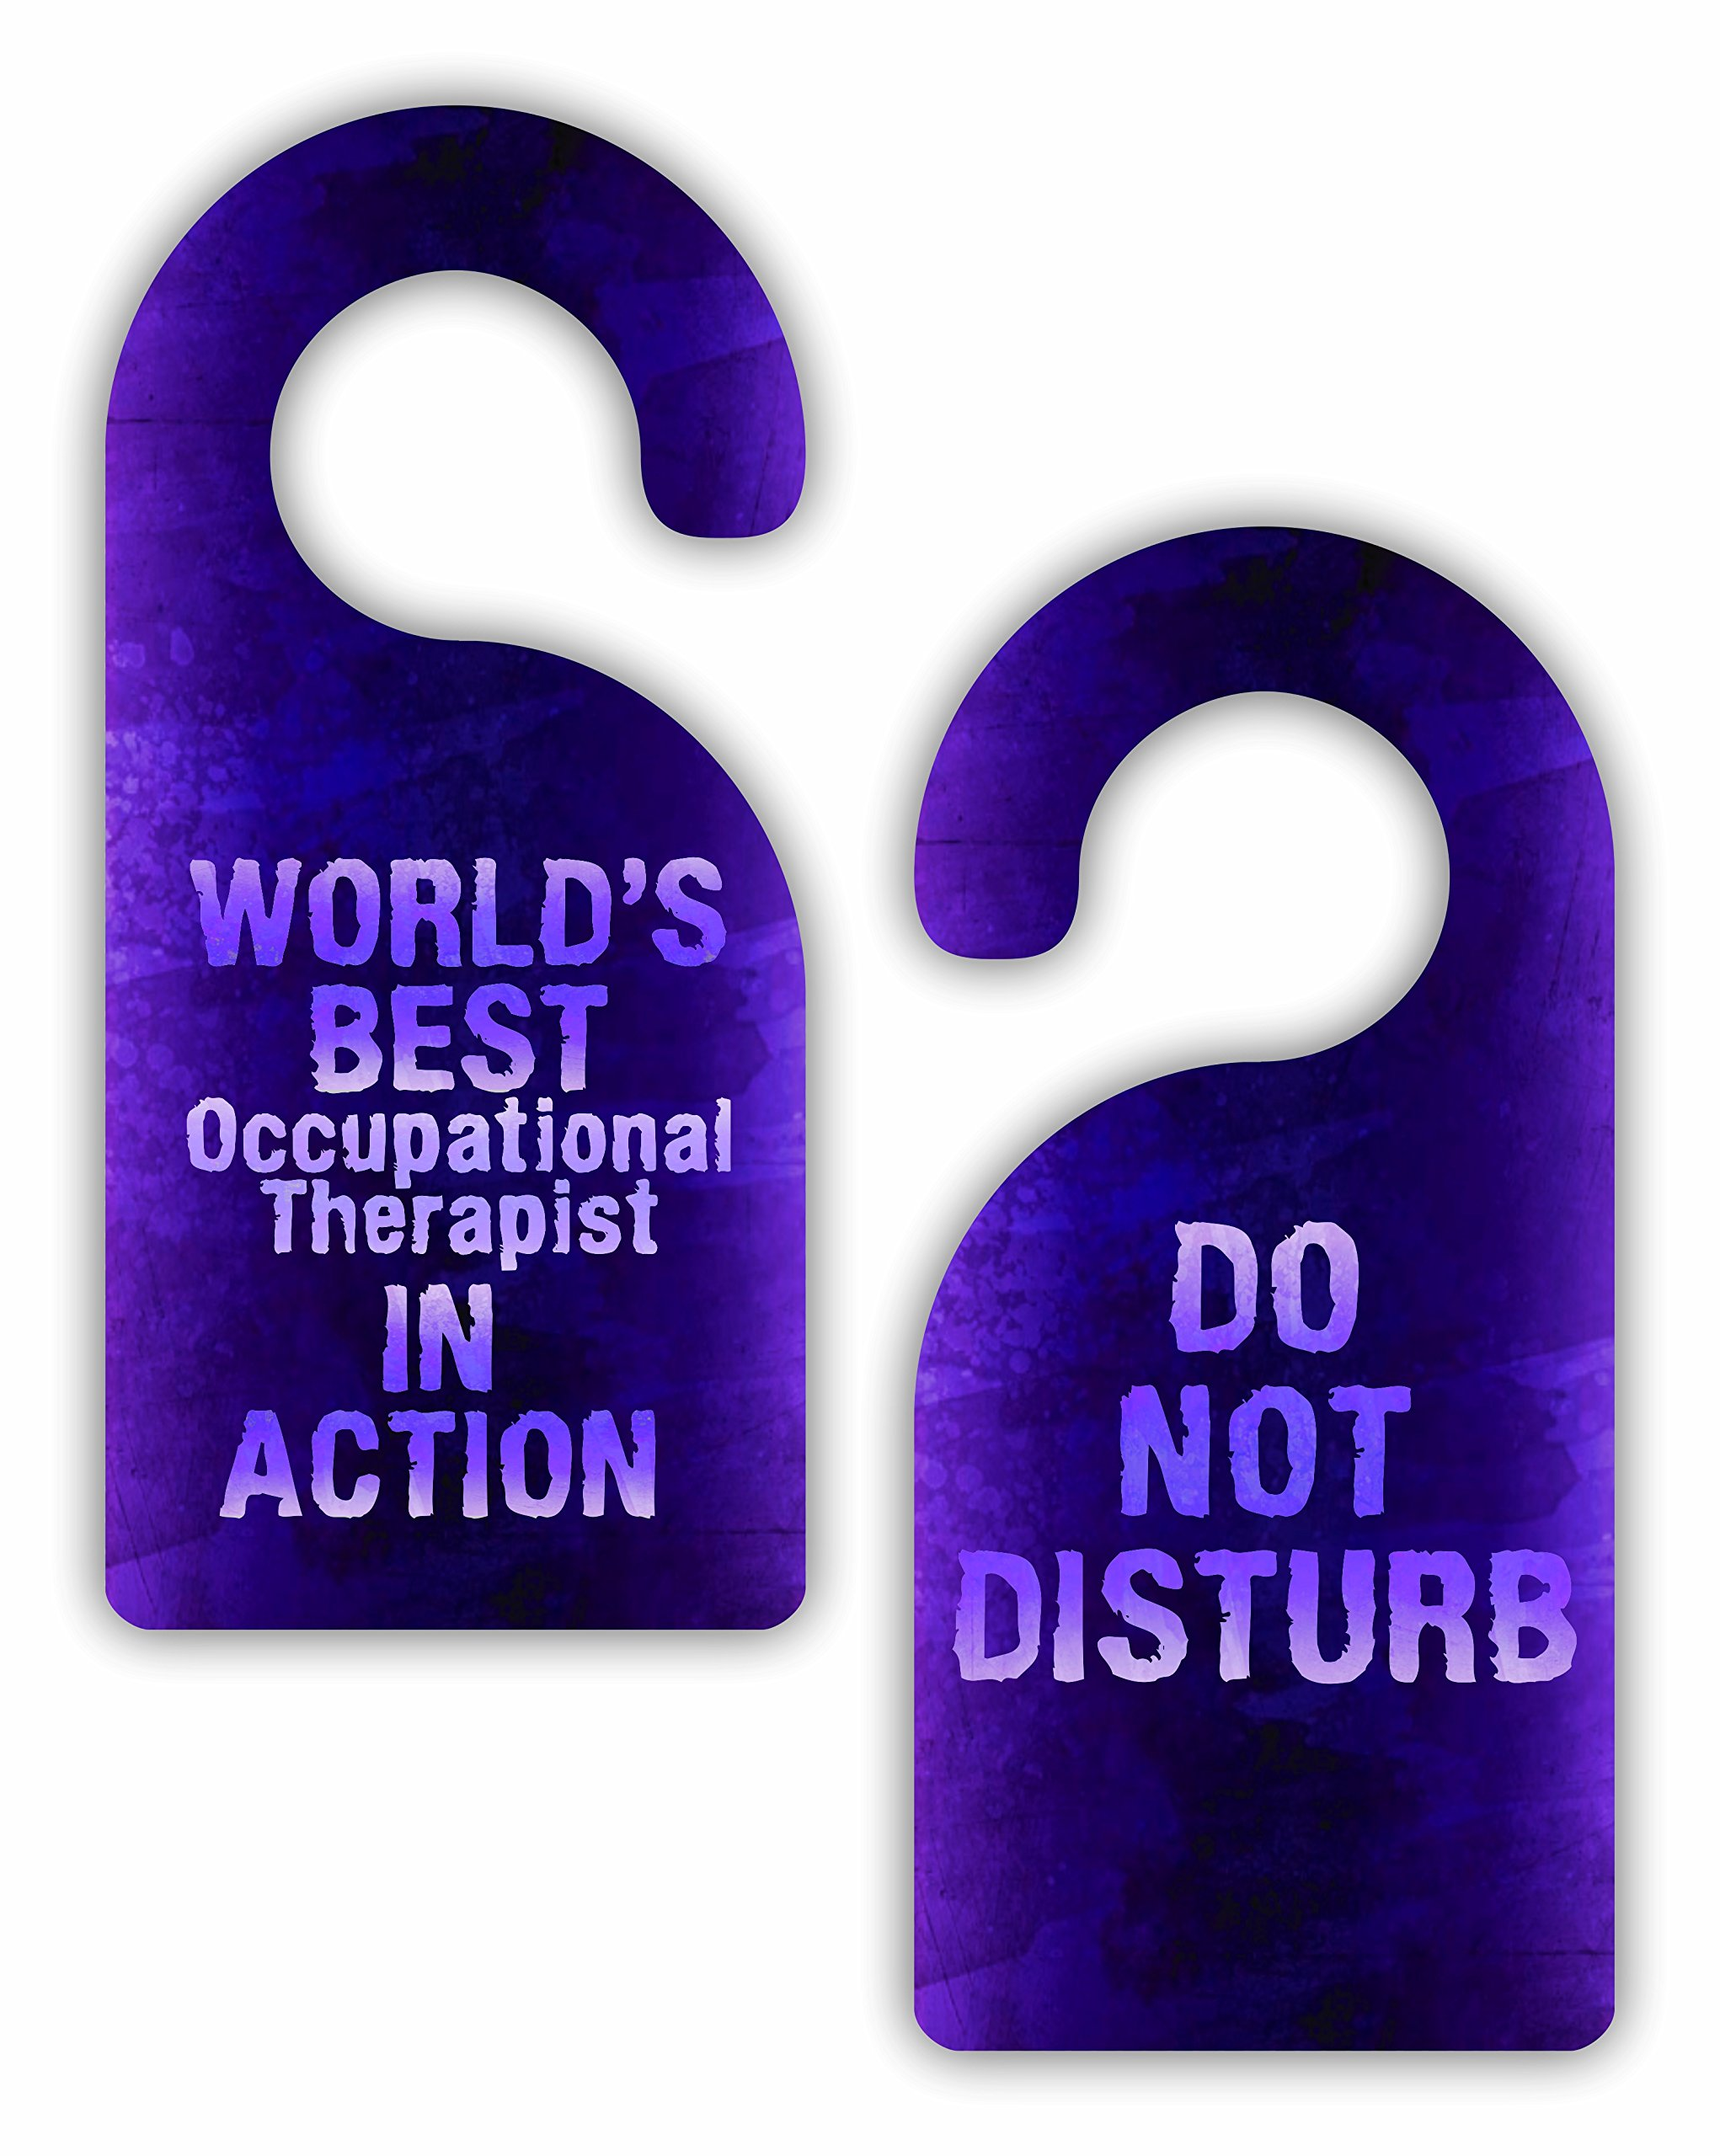 World's Best Occupational Therapist in Action/Do Not Disturb - Therapist - Watercolor Print - Double-Sided Hard Plastic Glossy Door Hanger